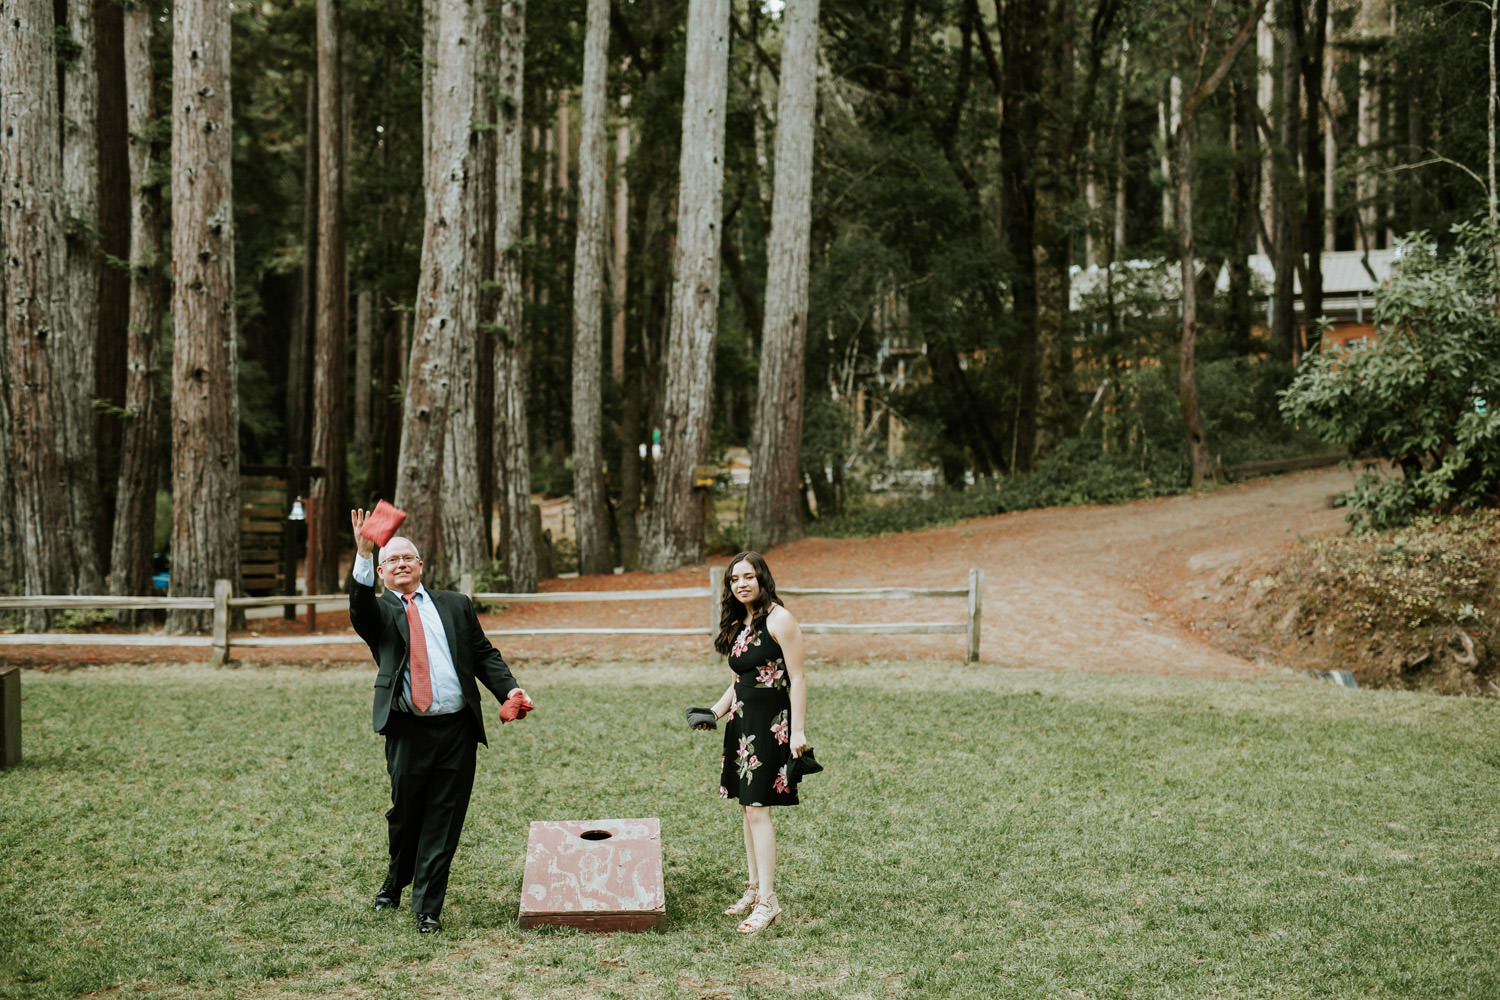 Wedding guest play games during the wedding day in Redwood forest in California